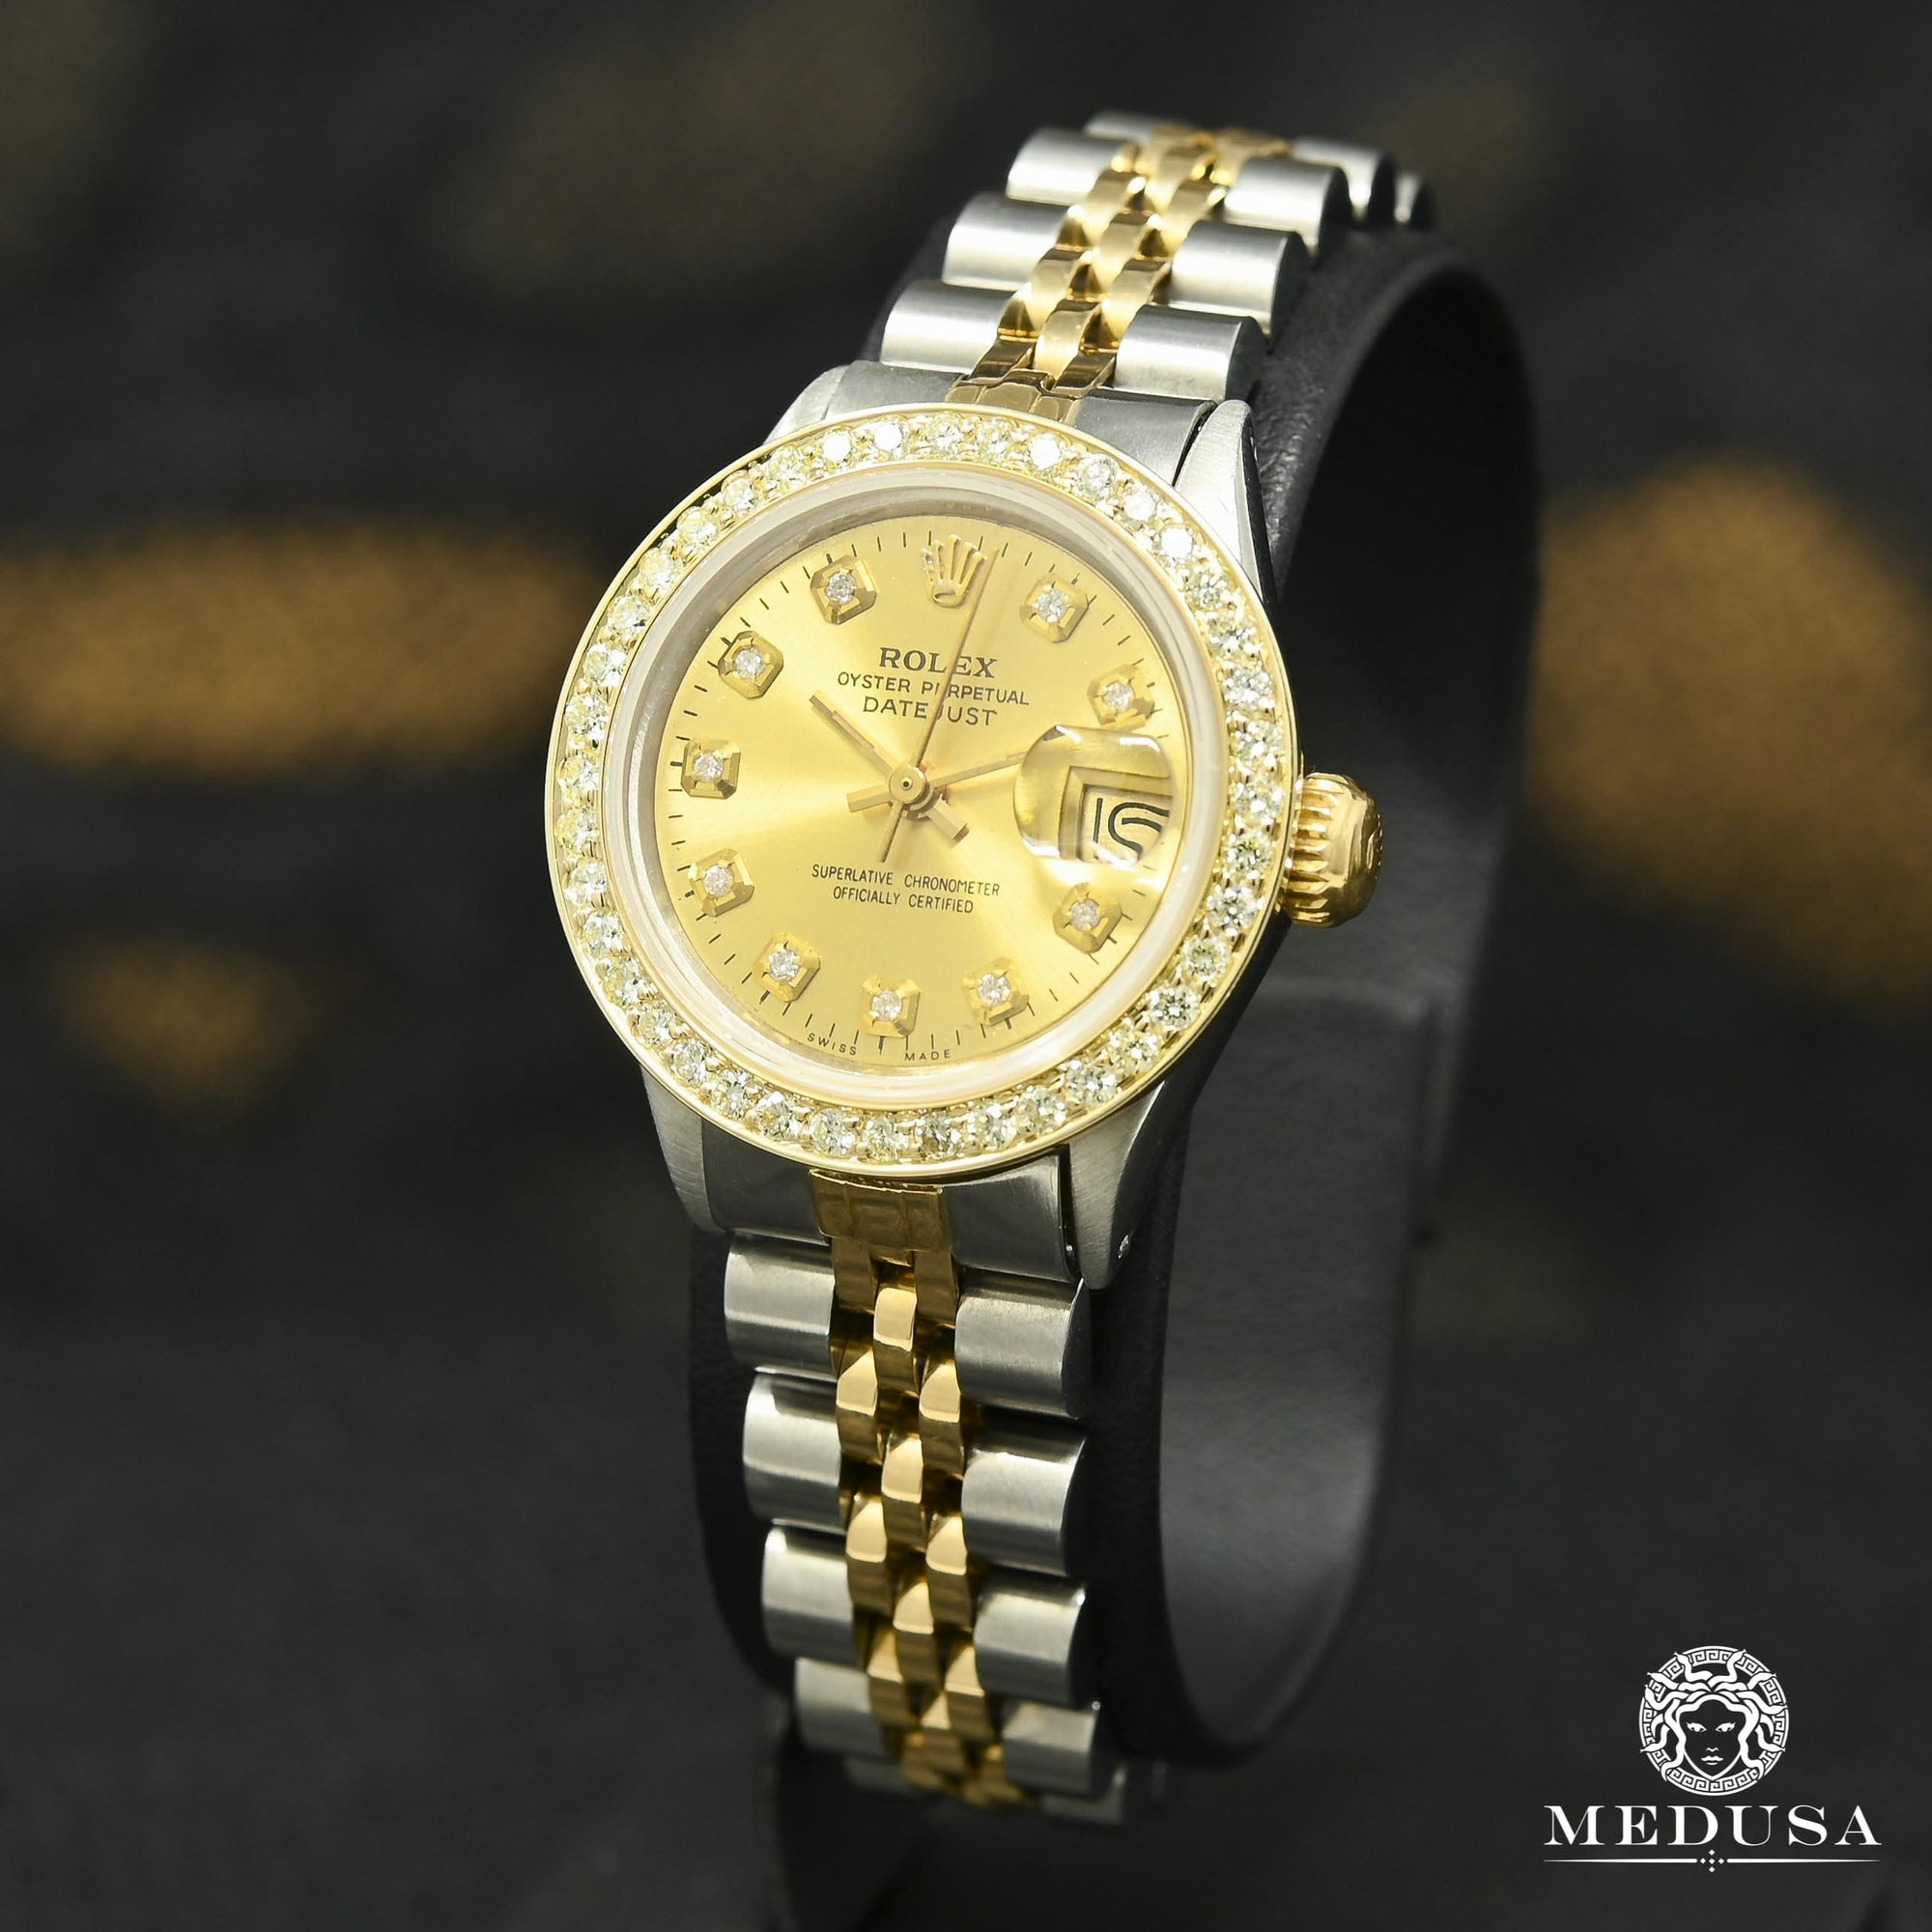 Rolex Datejust 26mm - Champagne